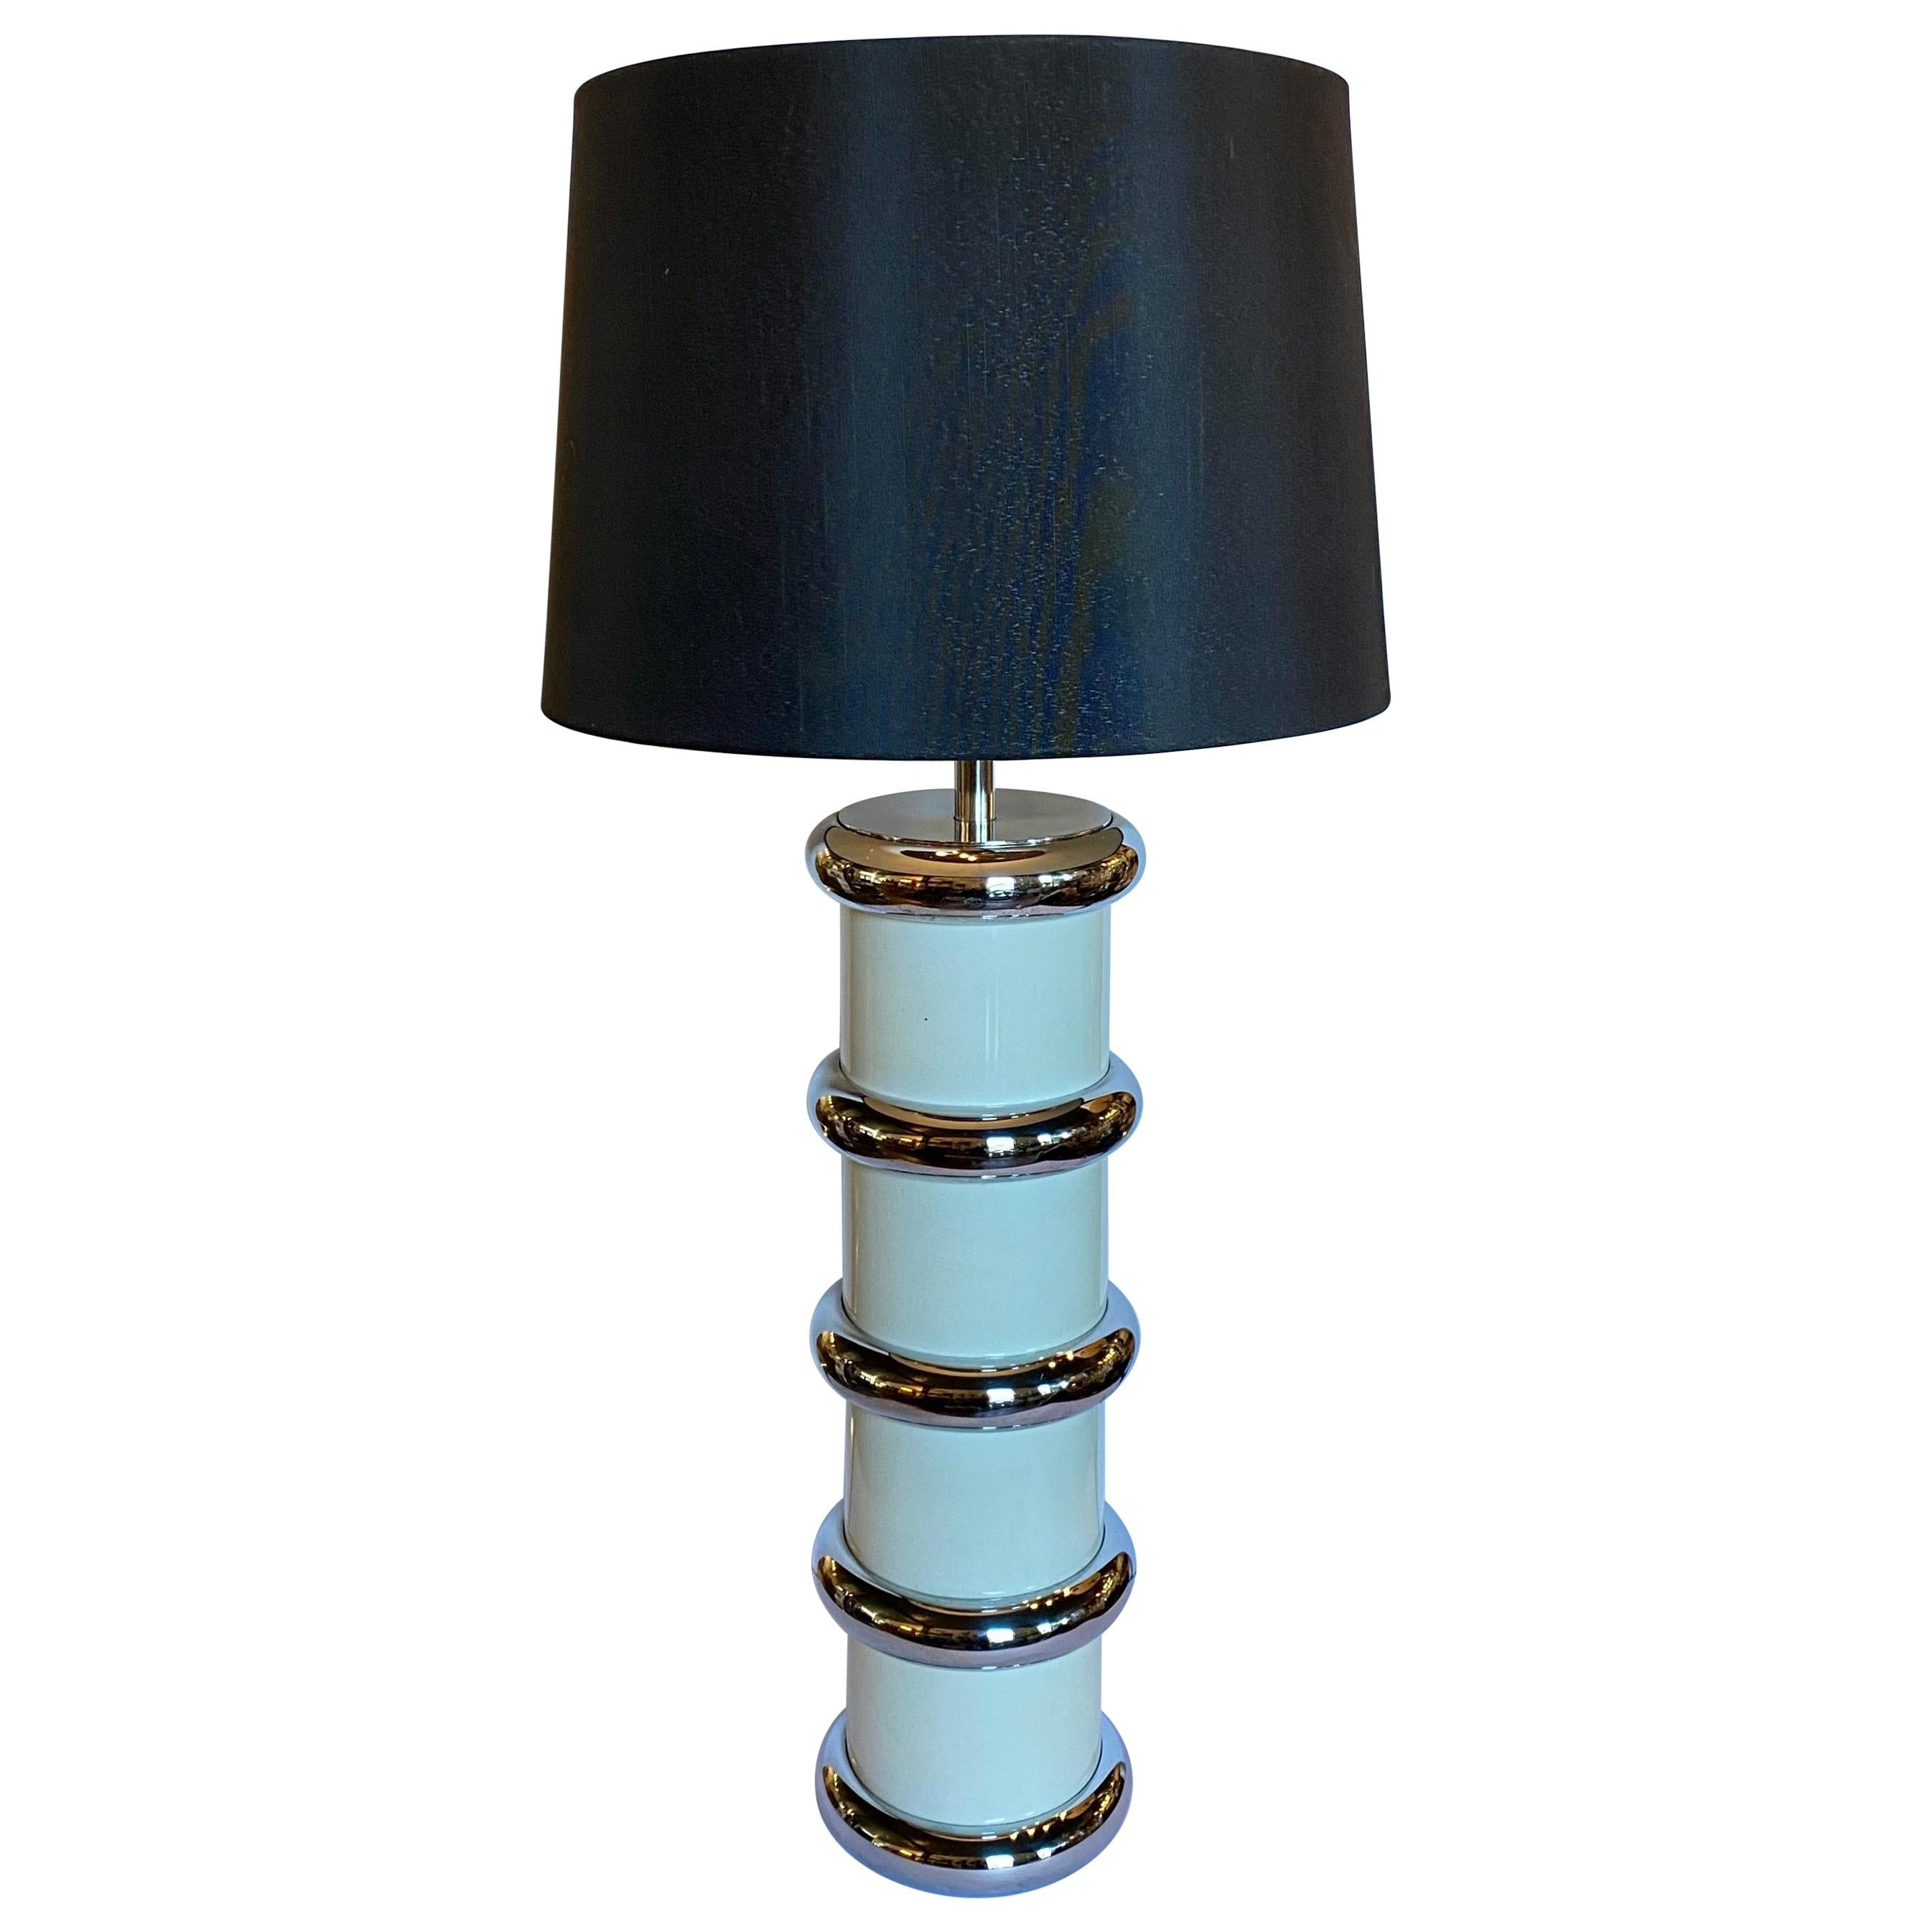 Modern Karl Springer Style Chrome Ring Table Lamp by Mutual Sunset, 1970s